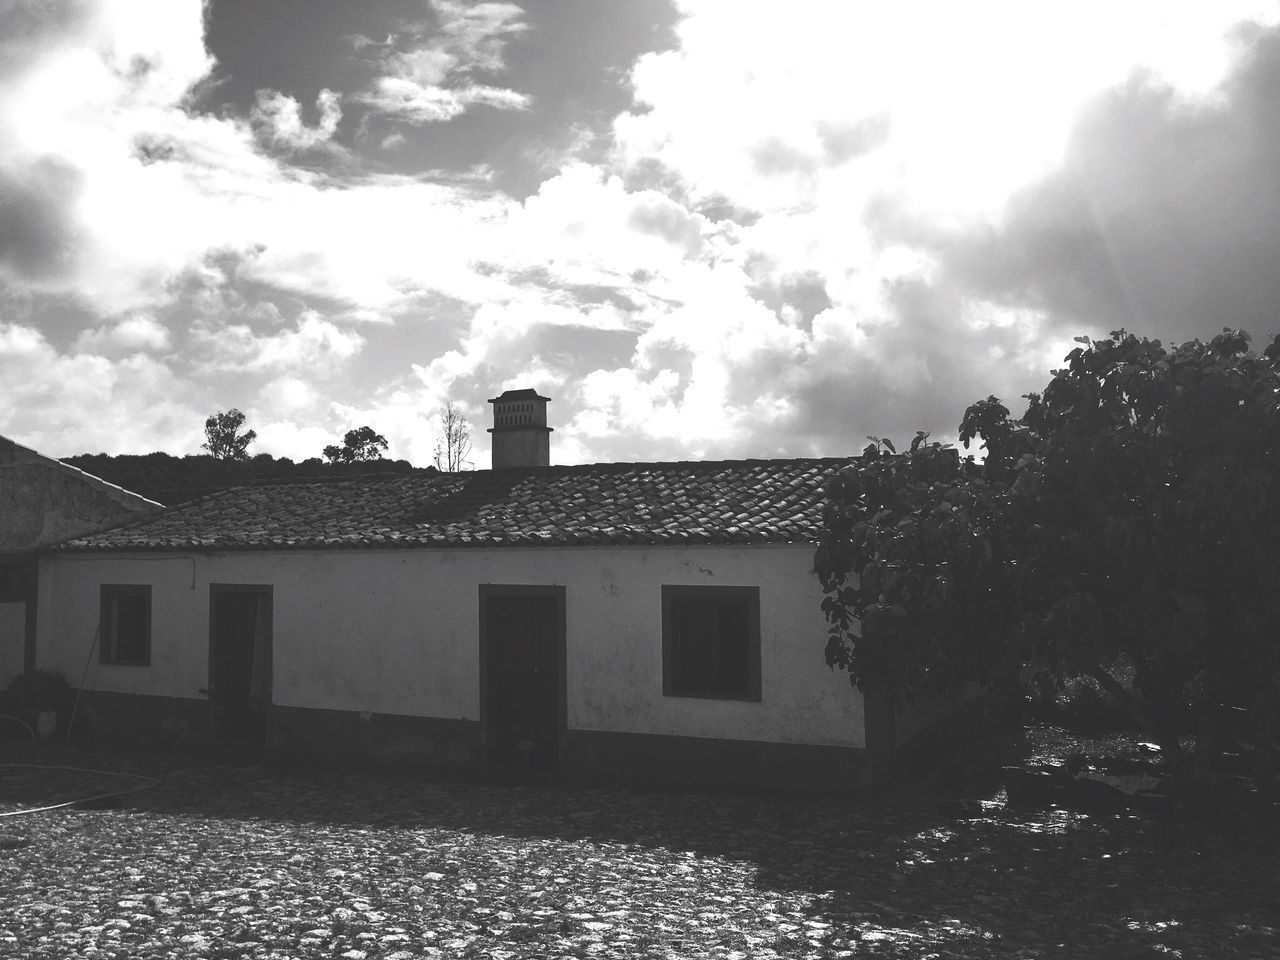 Herdade do Telheiro. Architecture Relaxing Moments No People Cloud - Sky Building Exterior Built Structure Sky House Tree Outdoors Day Low Angle View Nature Black & White Odemira Alentejo,Portugal